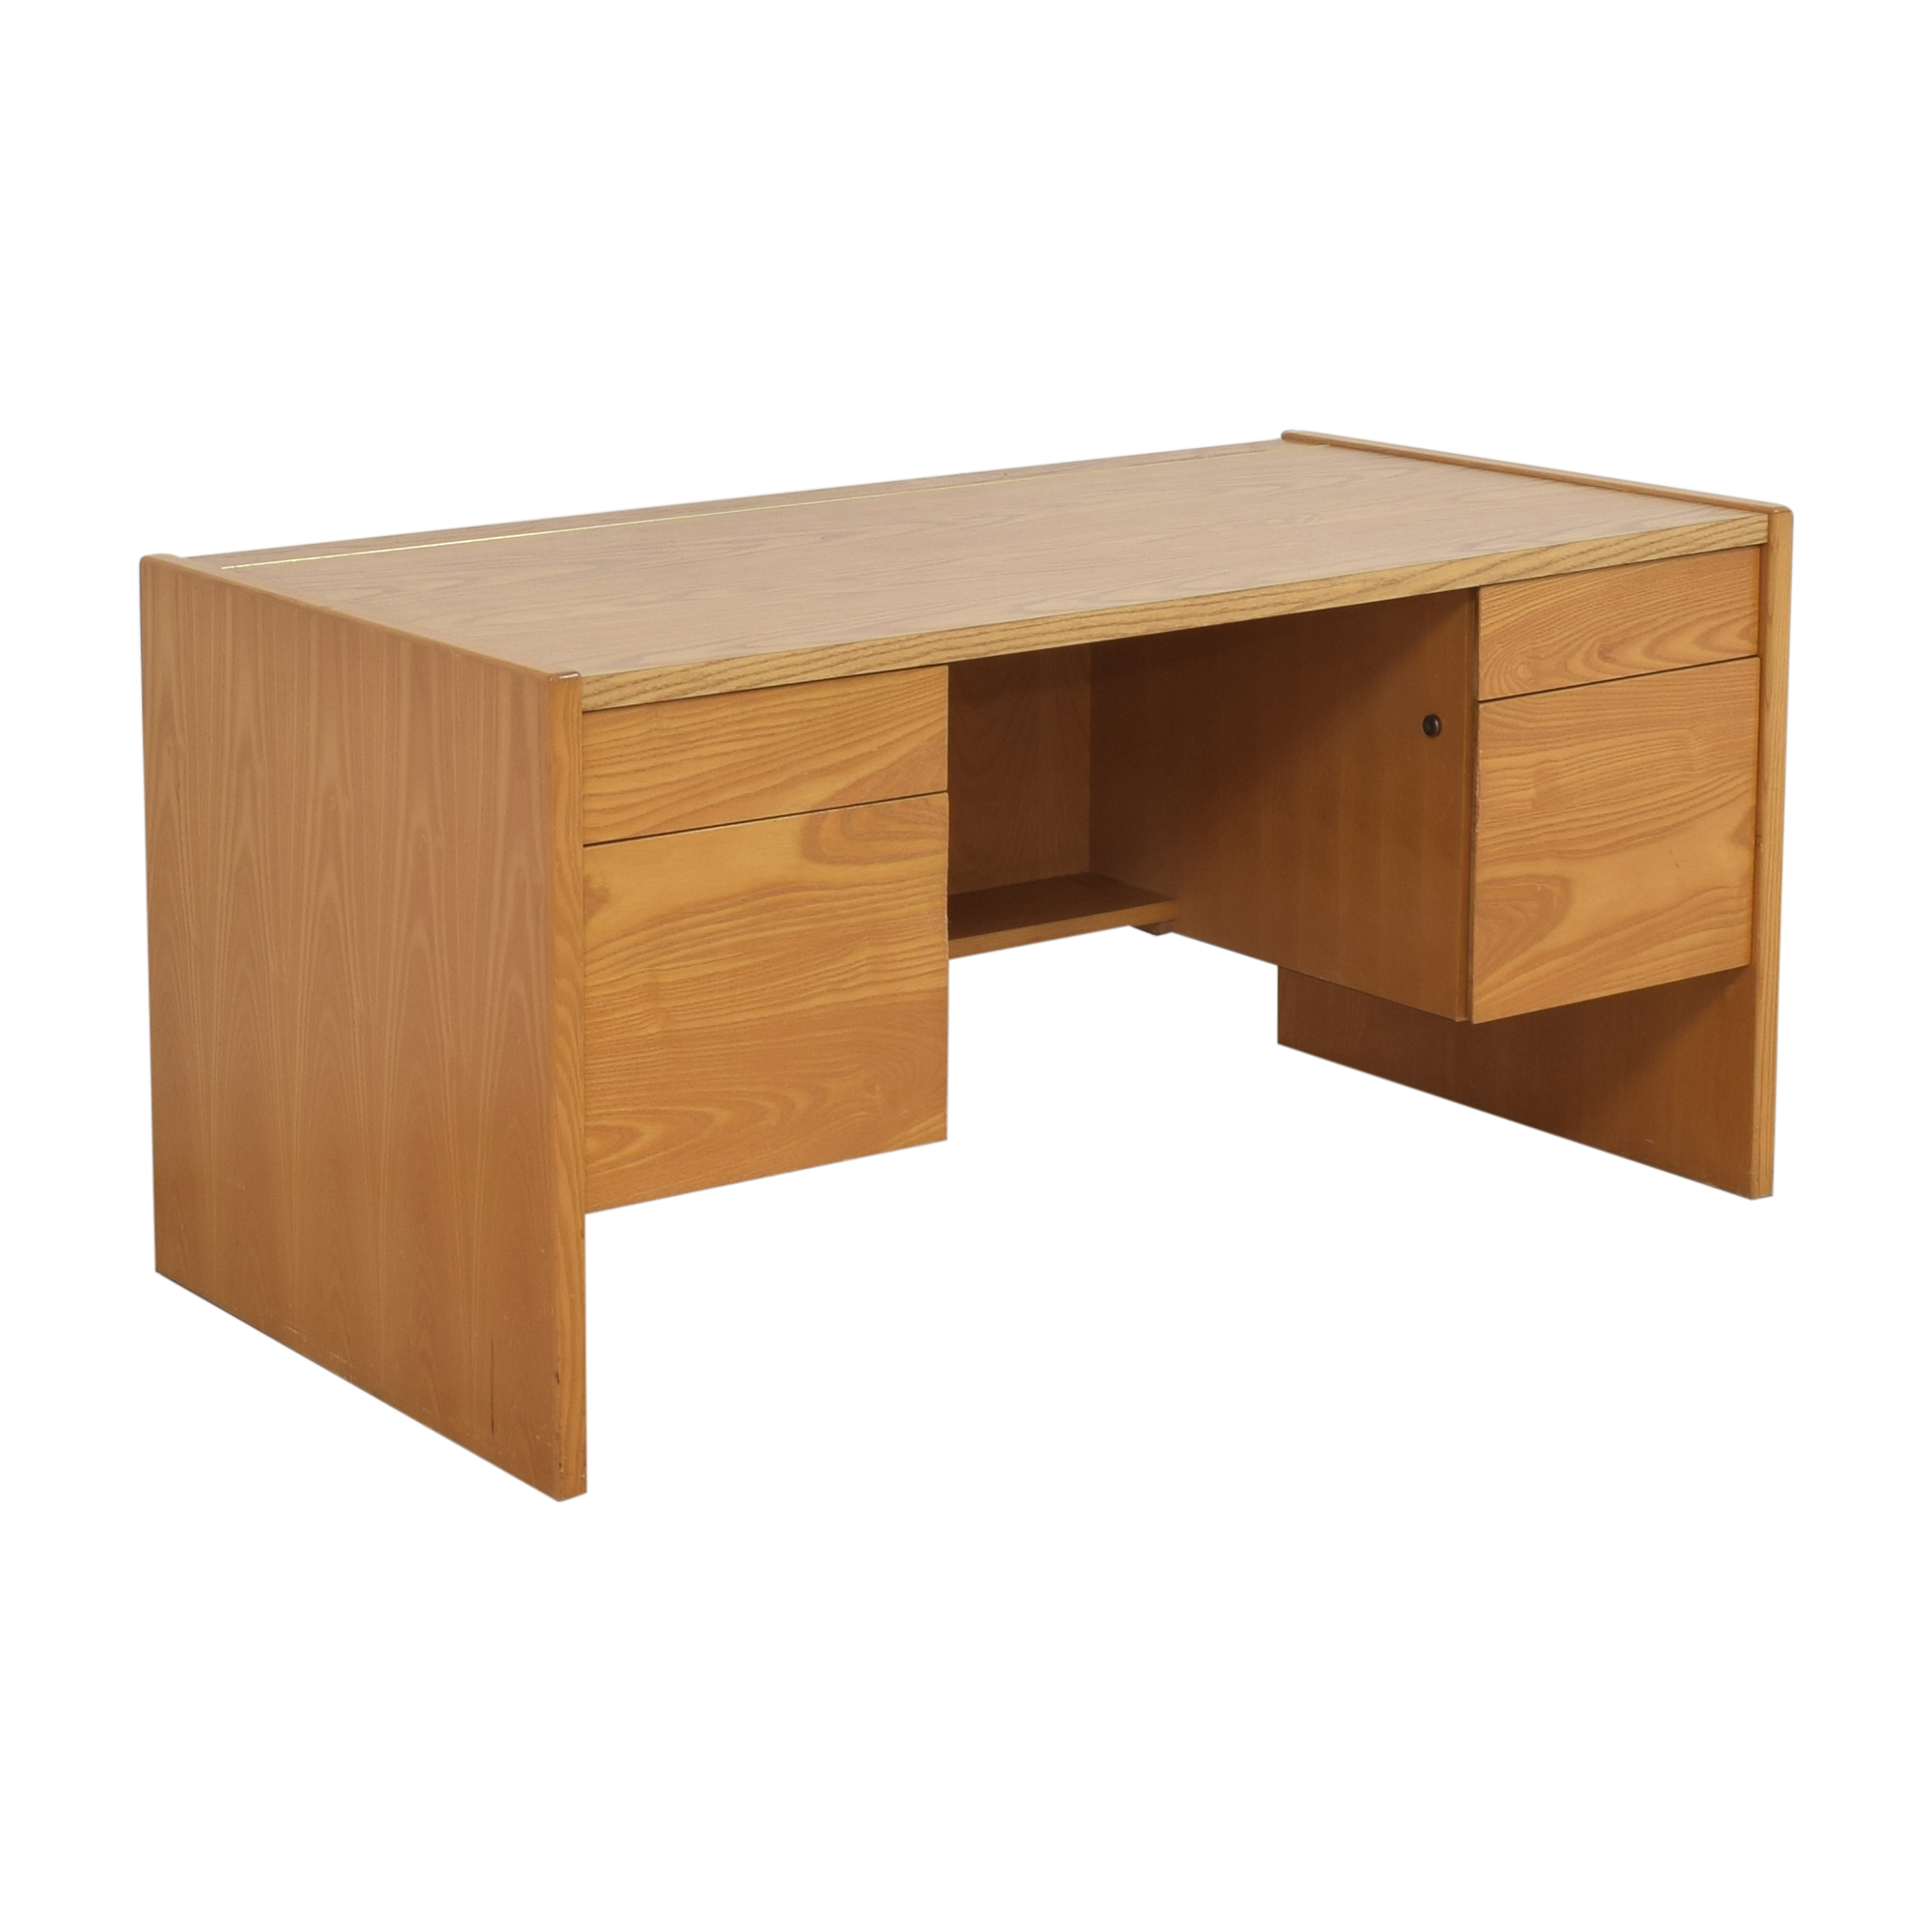 Boling Furniture Boling Executive Desk second hand